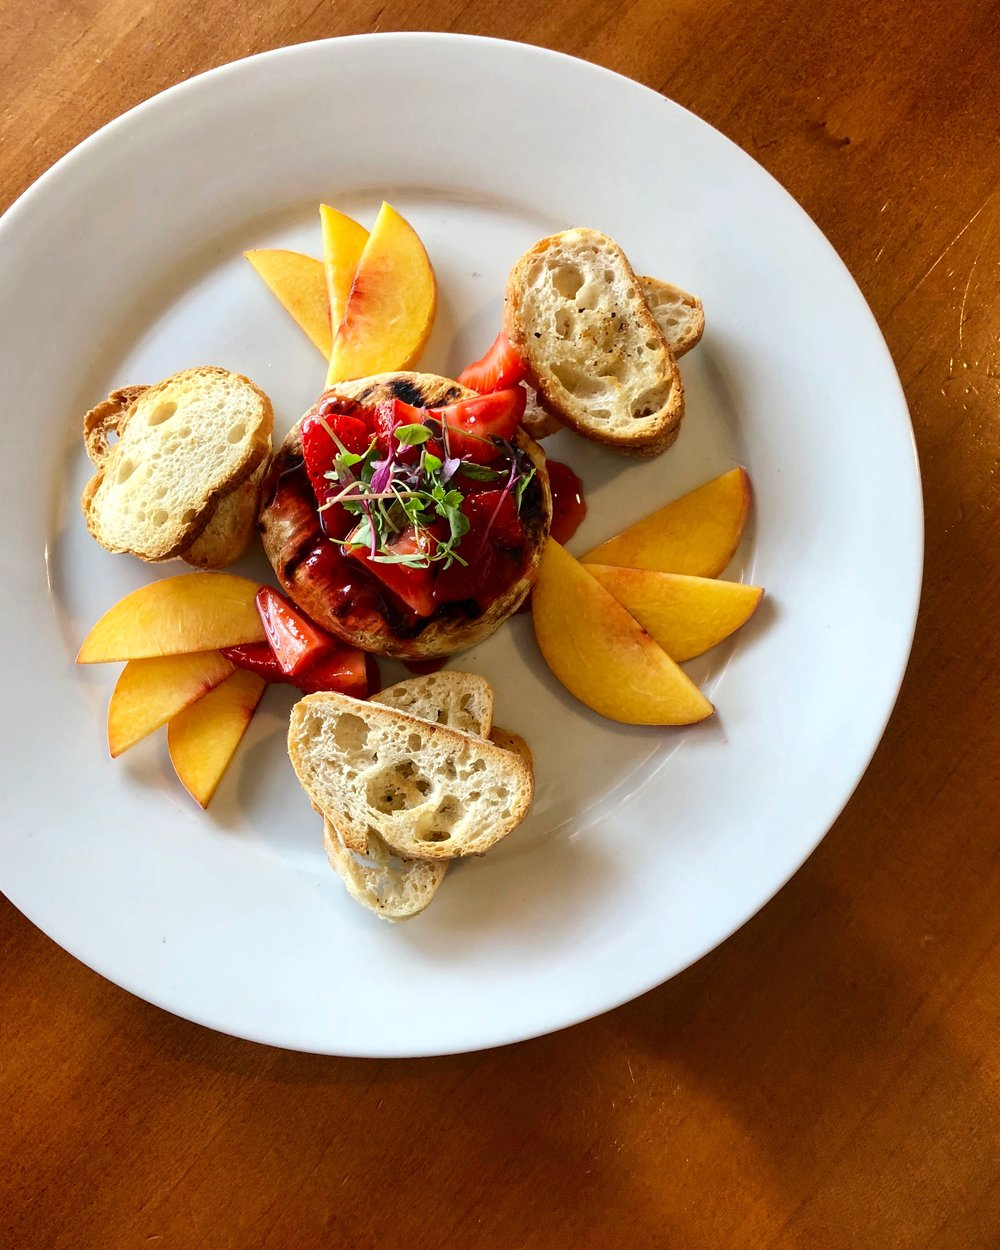 Grilled Baby Brie with SC Peaches, Preserved Strawberries, Toasted Crostini